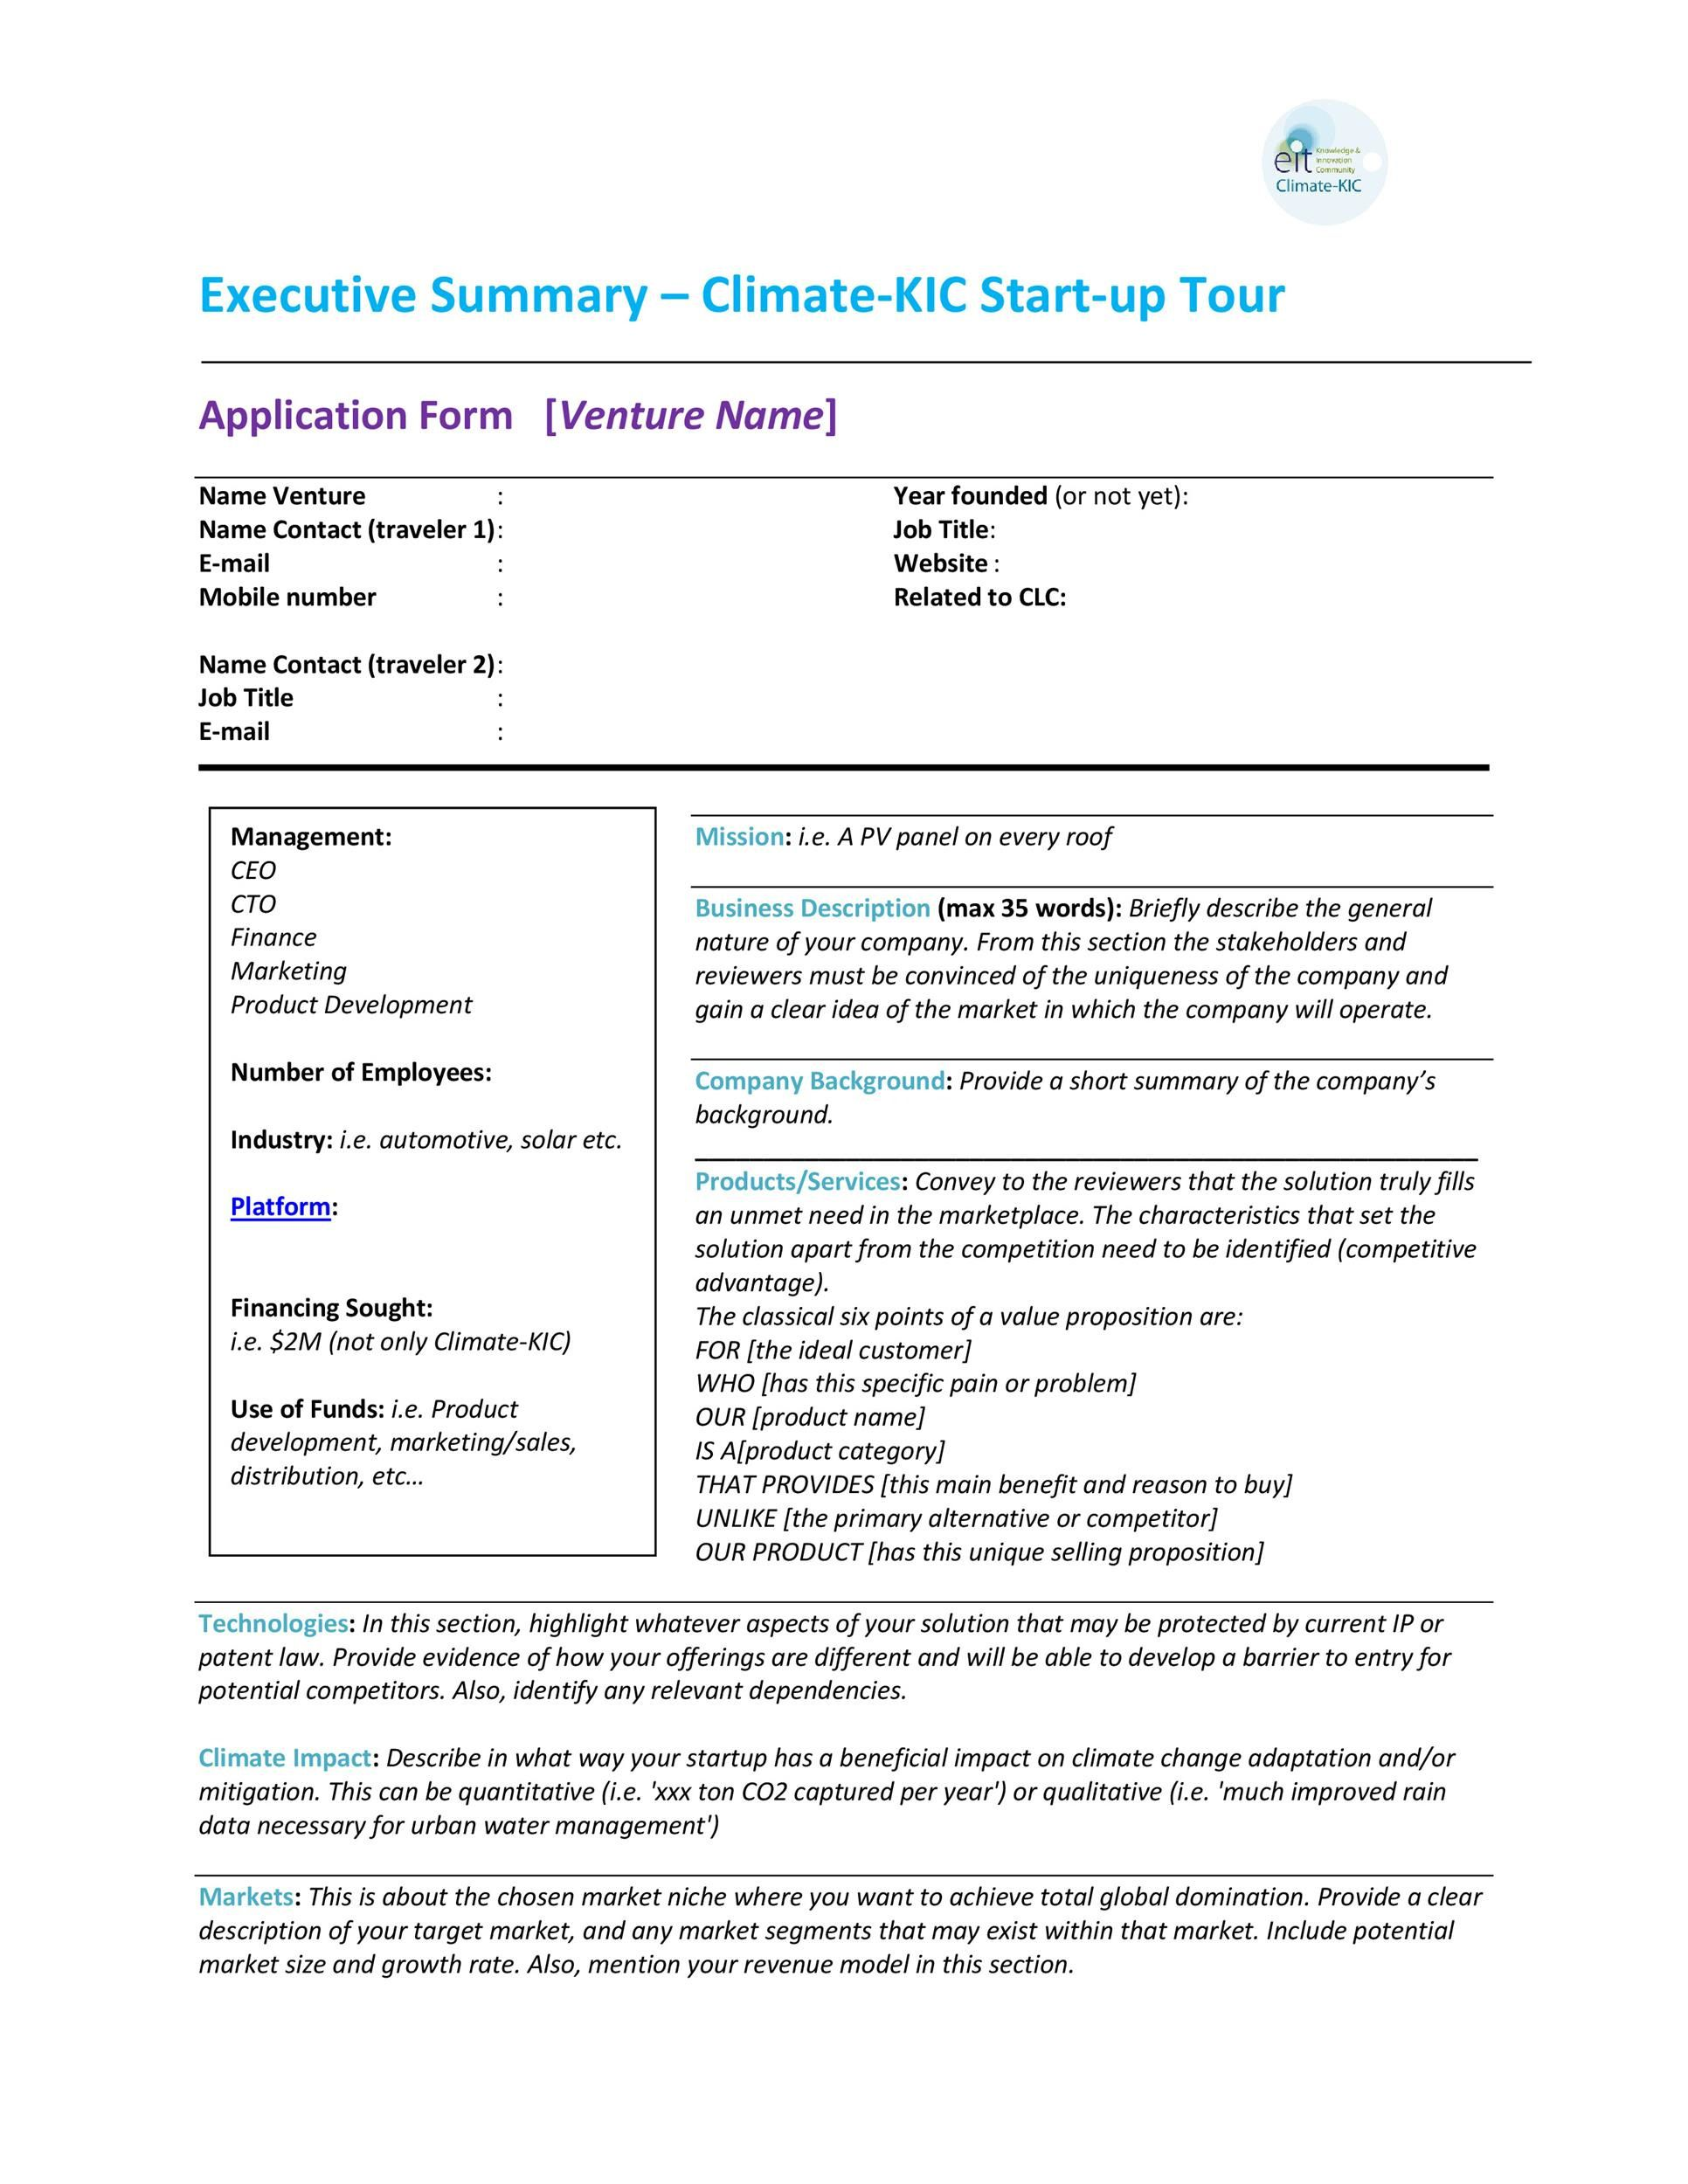 009 Breathtaking Executive Summary Word Template Free Download Image Full